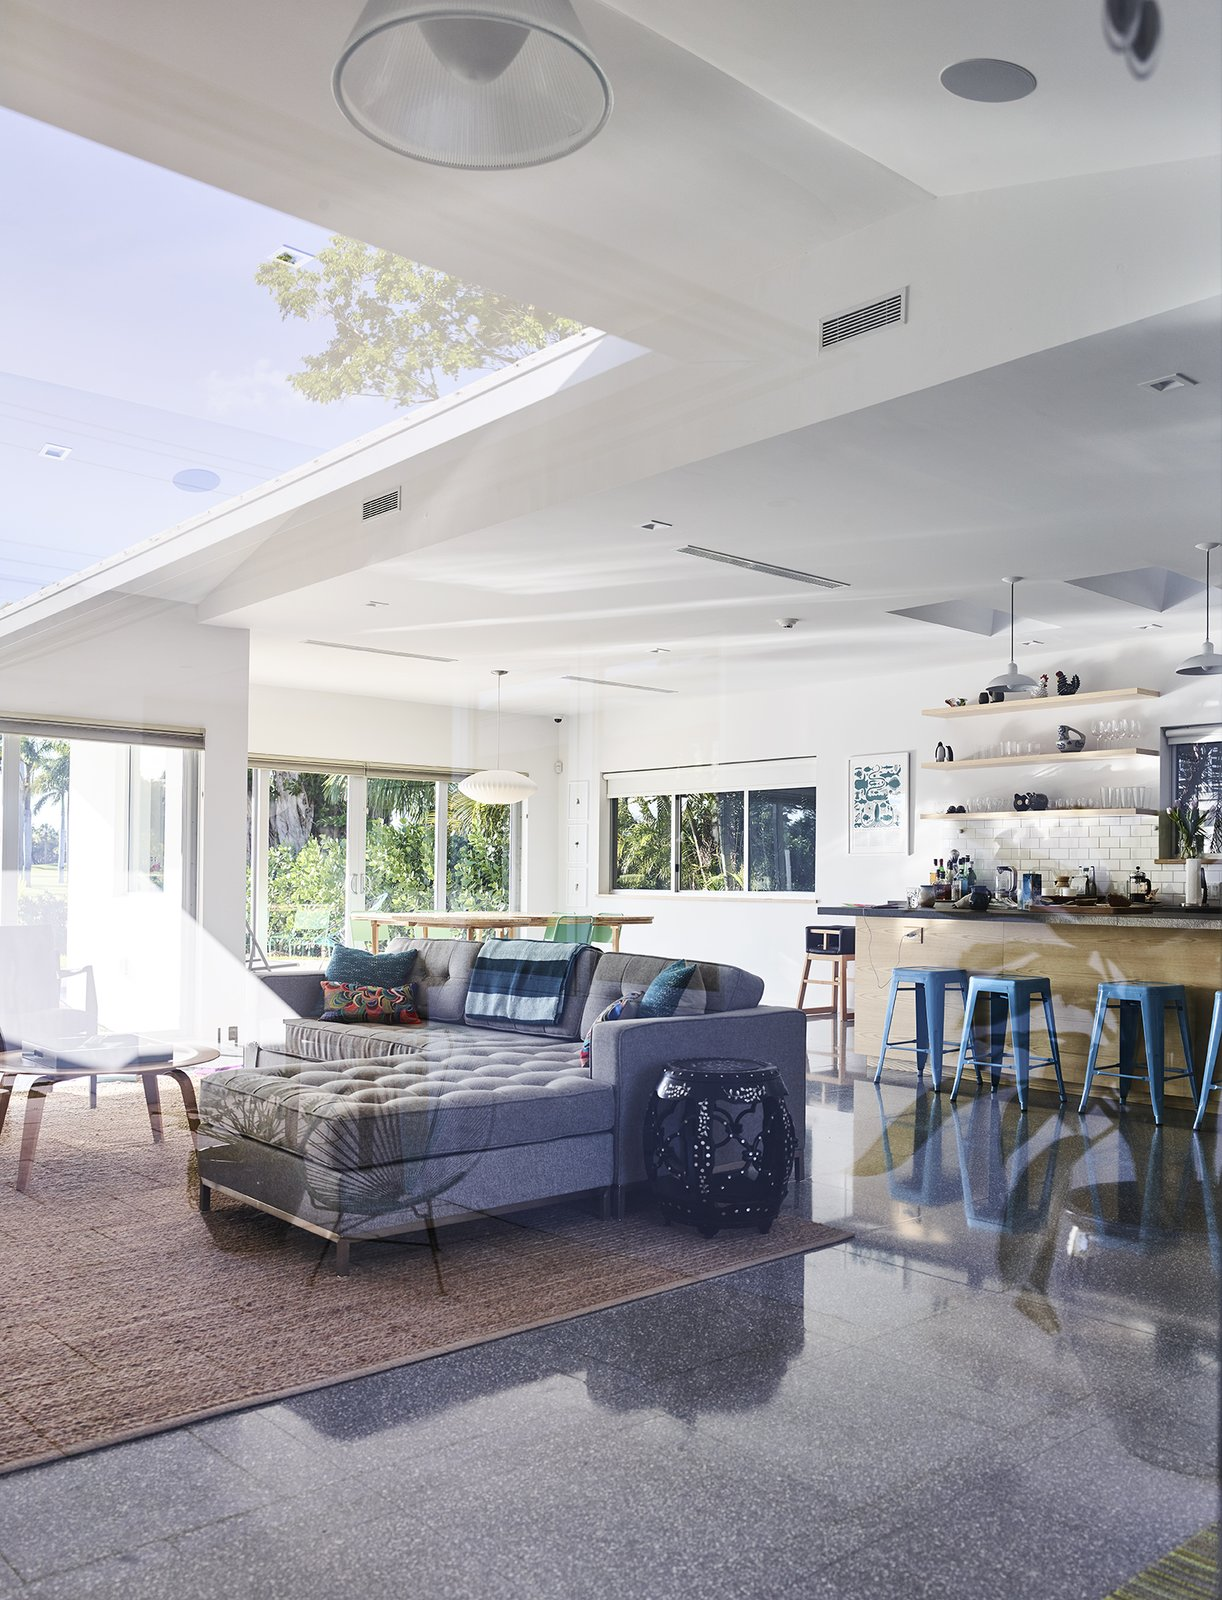 Living Room, Stools, Sofa, Ceiling Lighting, and Terrazzo Floor When the house's existing slab proved too damaged, Gelpi opted for a terrazzo floor tile by Perpetua in the same dimensions as the exterior tiles. - Miami, Florida Dwell Magazine : July / August 2017  Photo 7 of 12 in A Professor and Designer Tests a New Hybrid Material on His Miami Beach Home